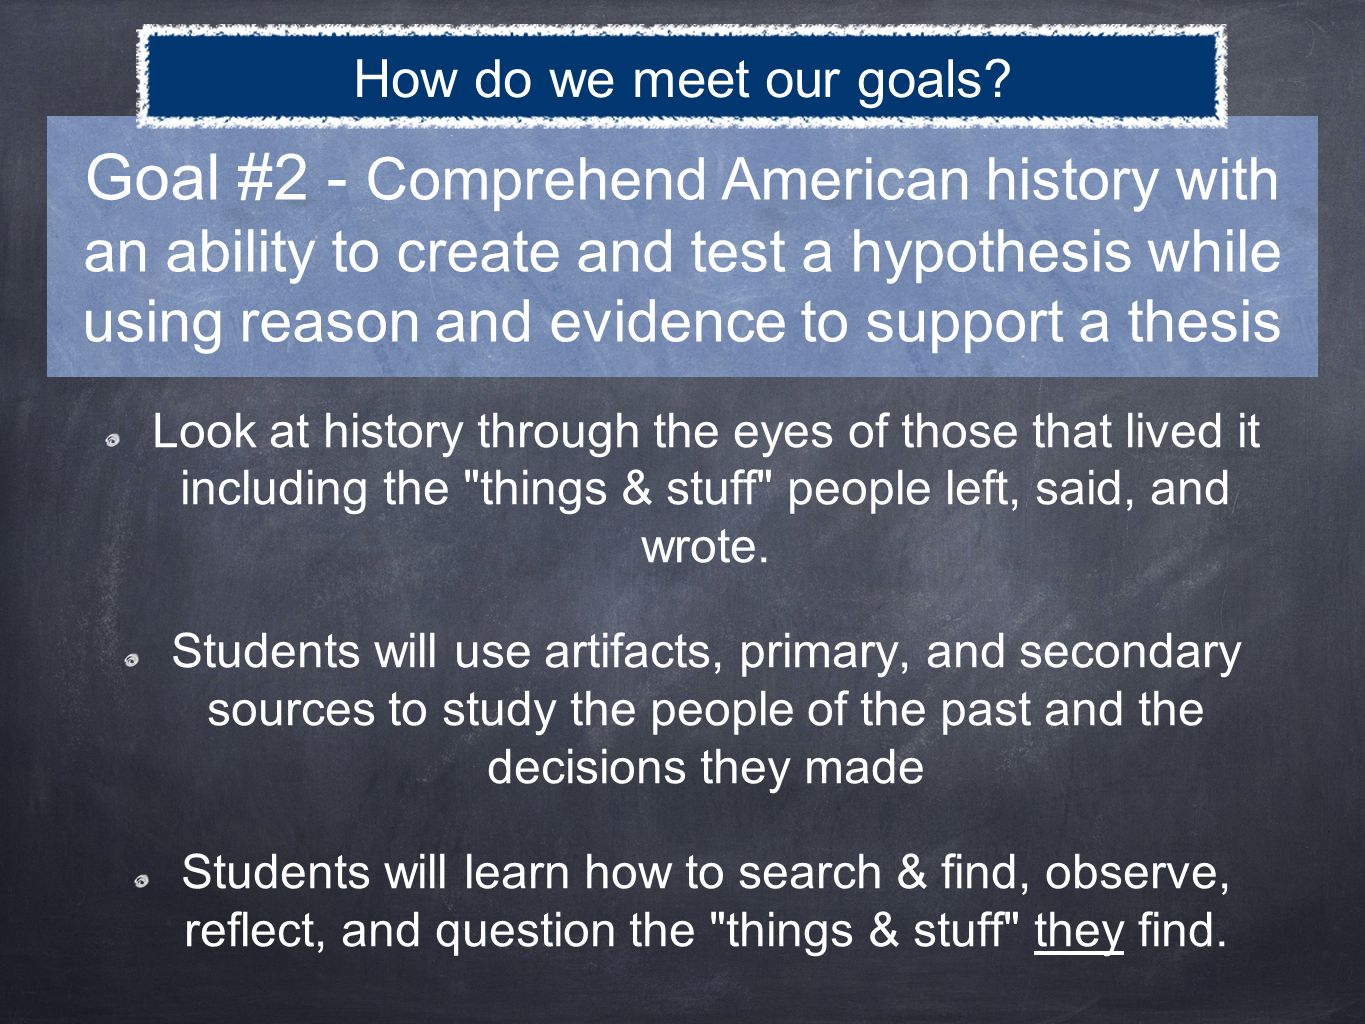 Using Observe, Reflect, and Question, students discover history.